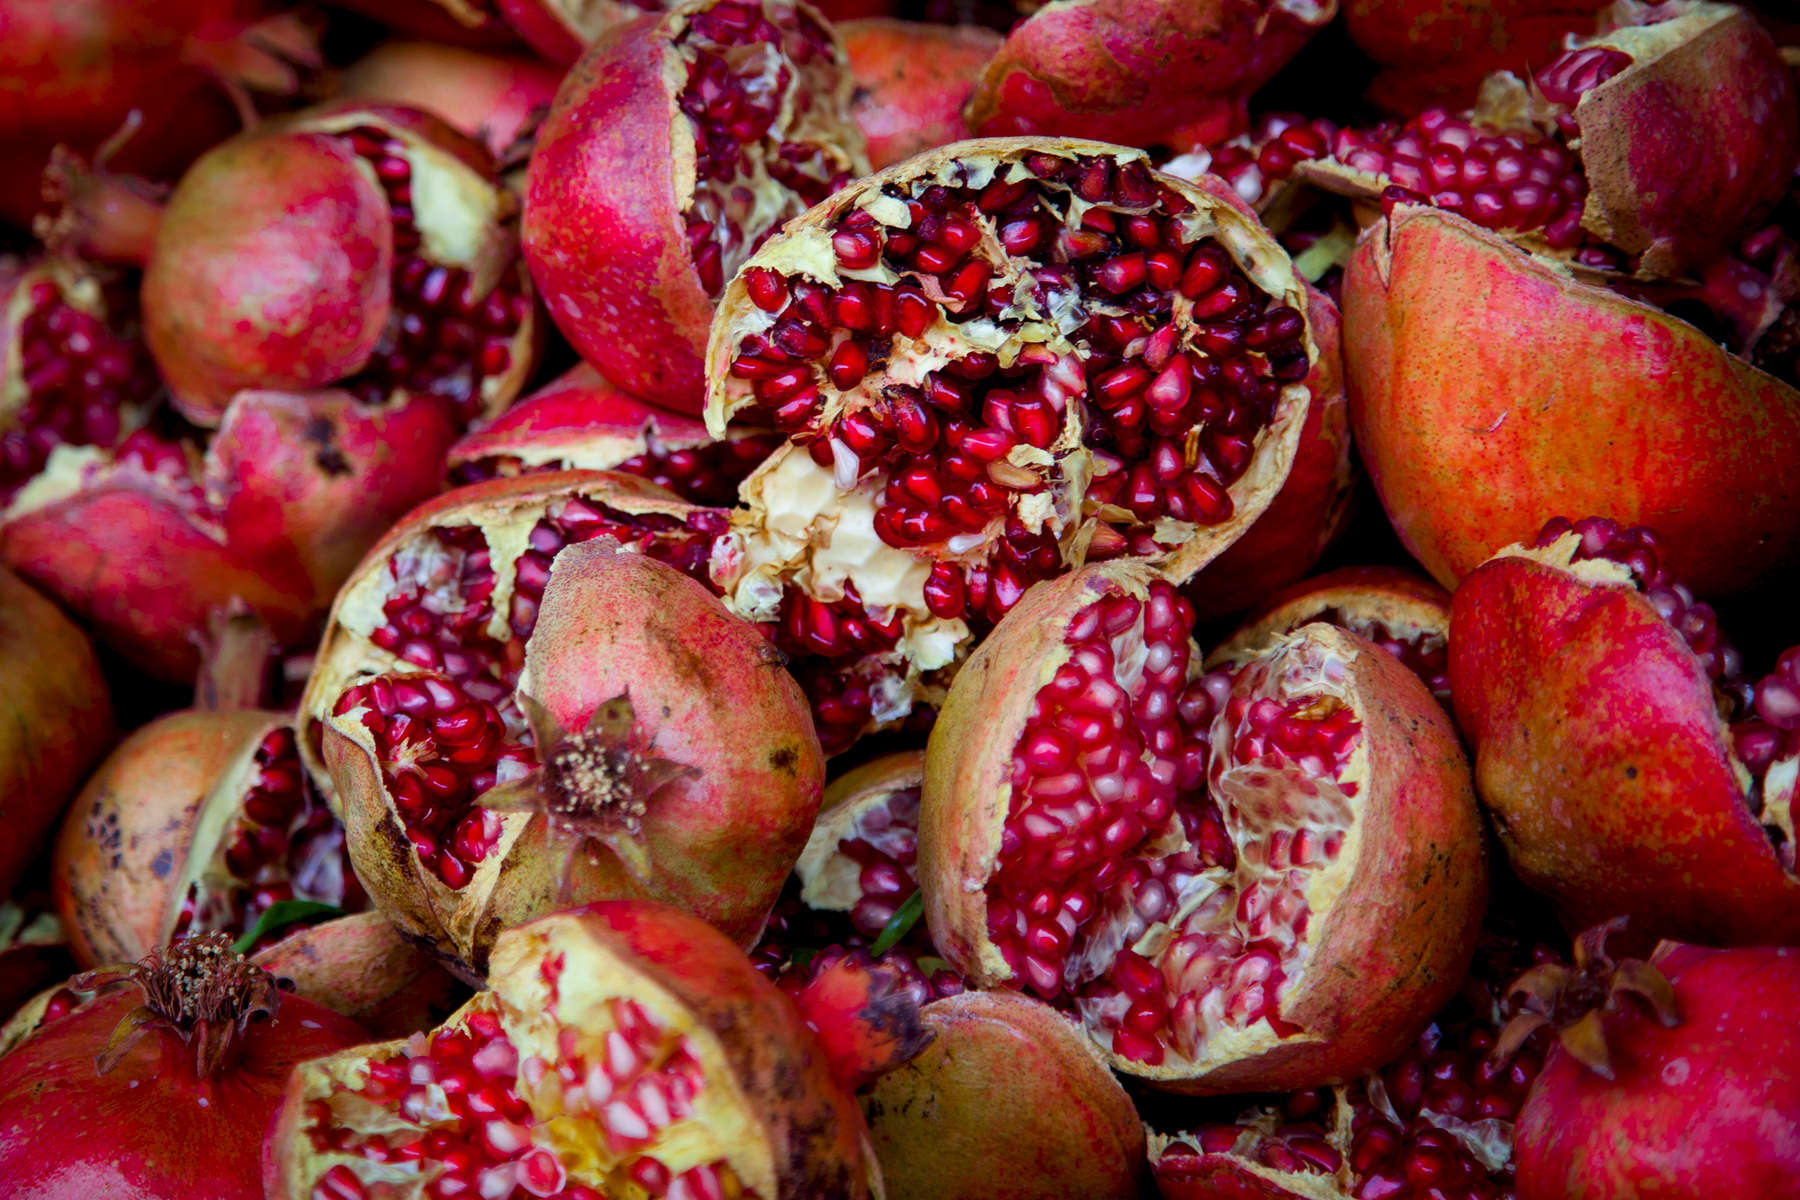 Kerman pomegranates.